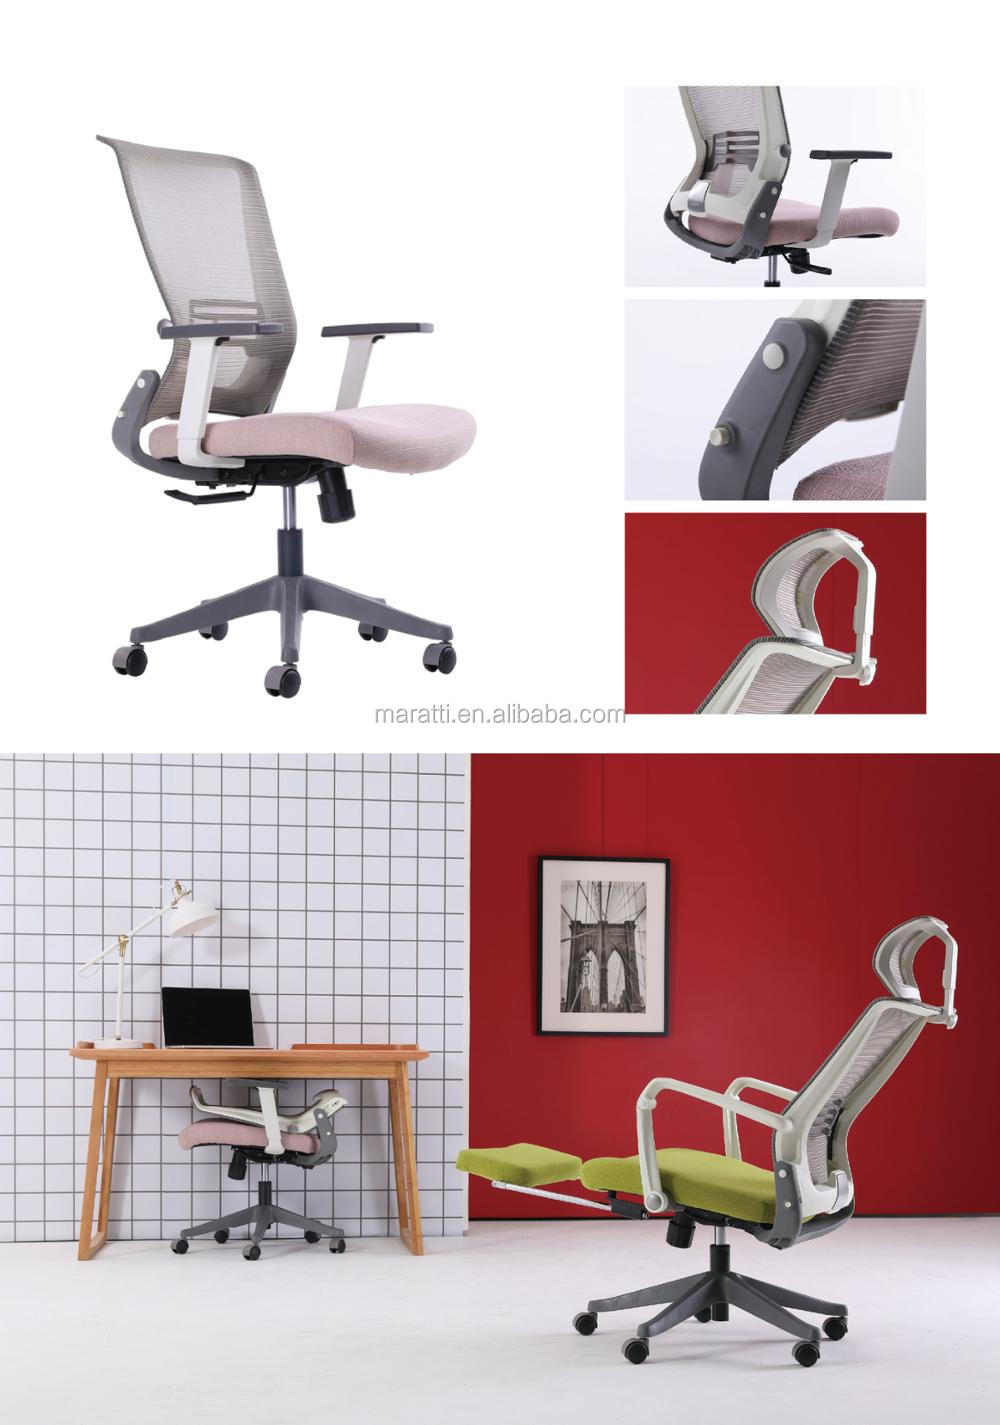 Foldable Office Chair Modern Foldable Office Chair High Back Office Chair Chair Office Buy Modern Folding Office Chair Chair Office High Back Office Chair Product On